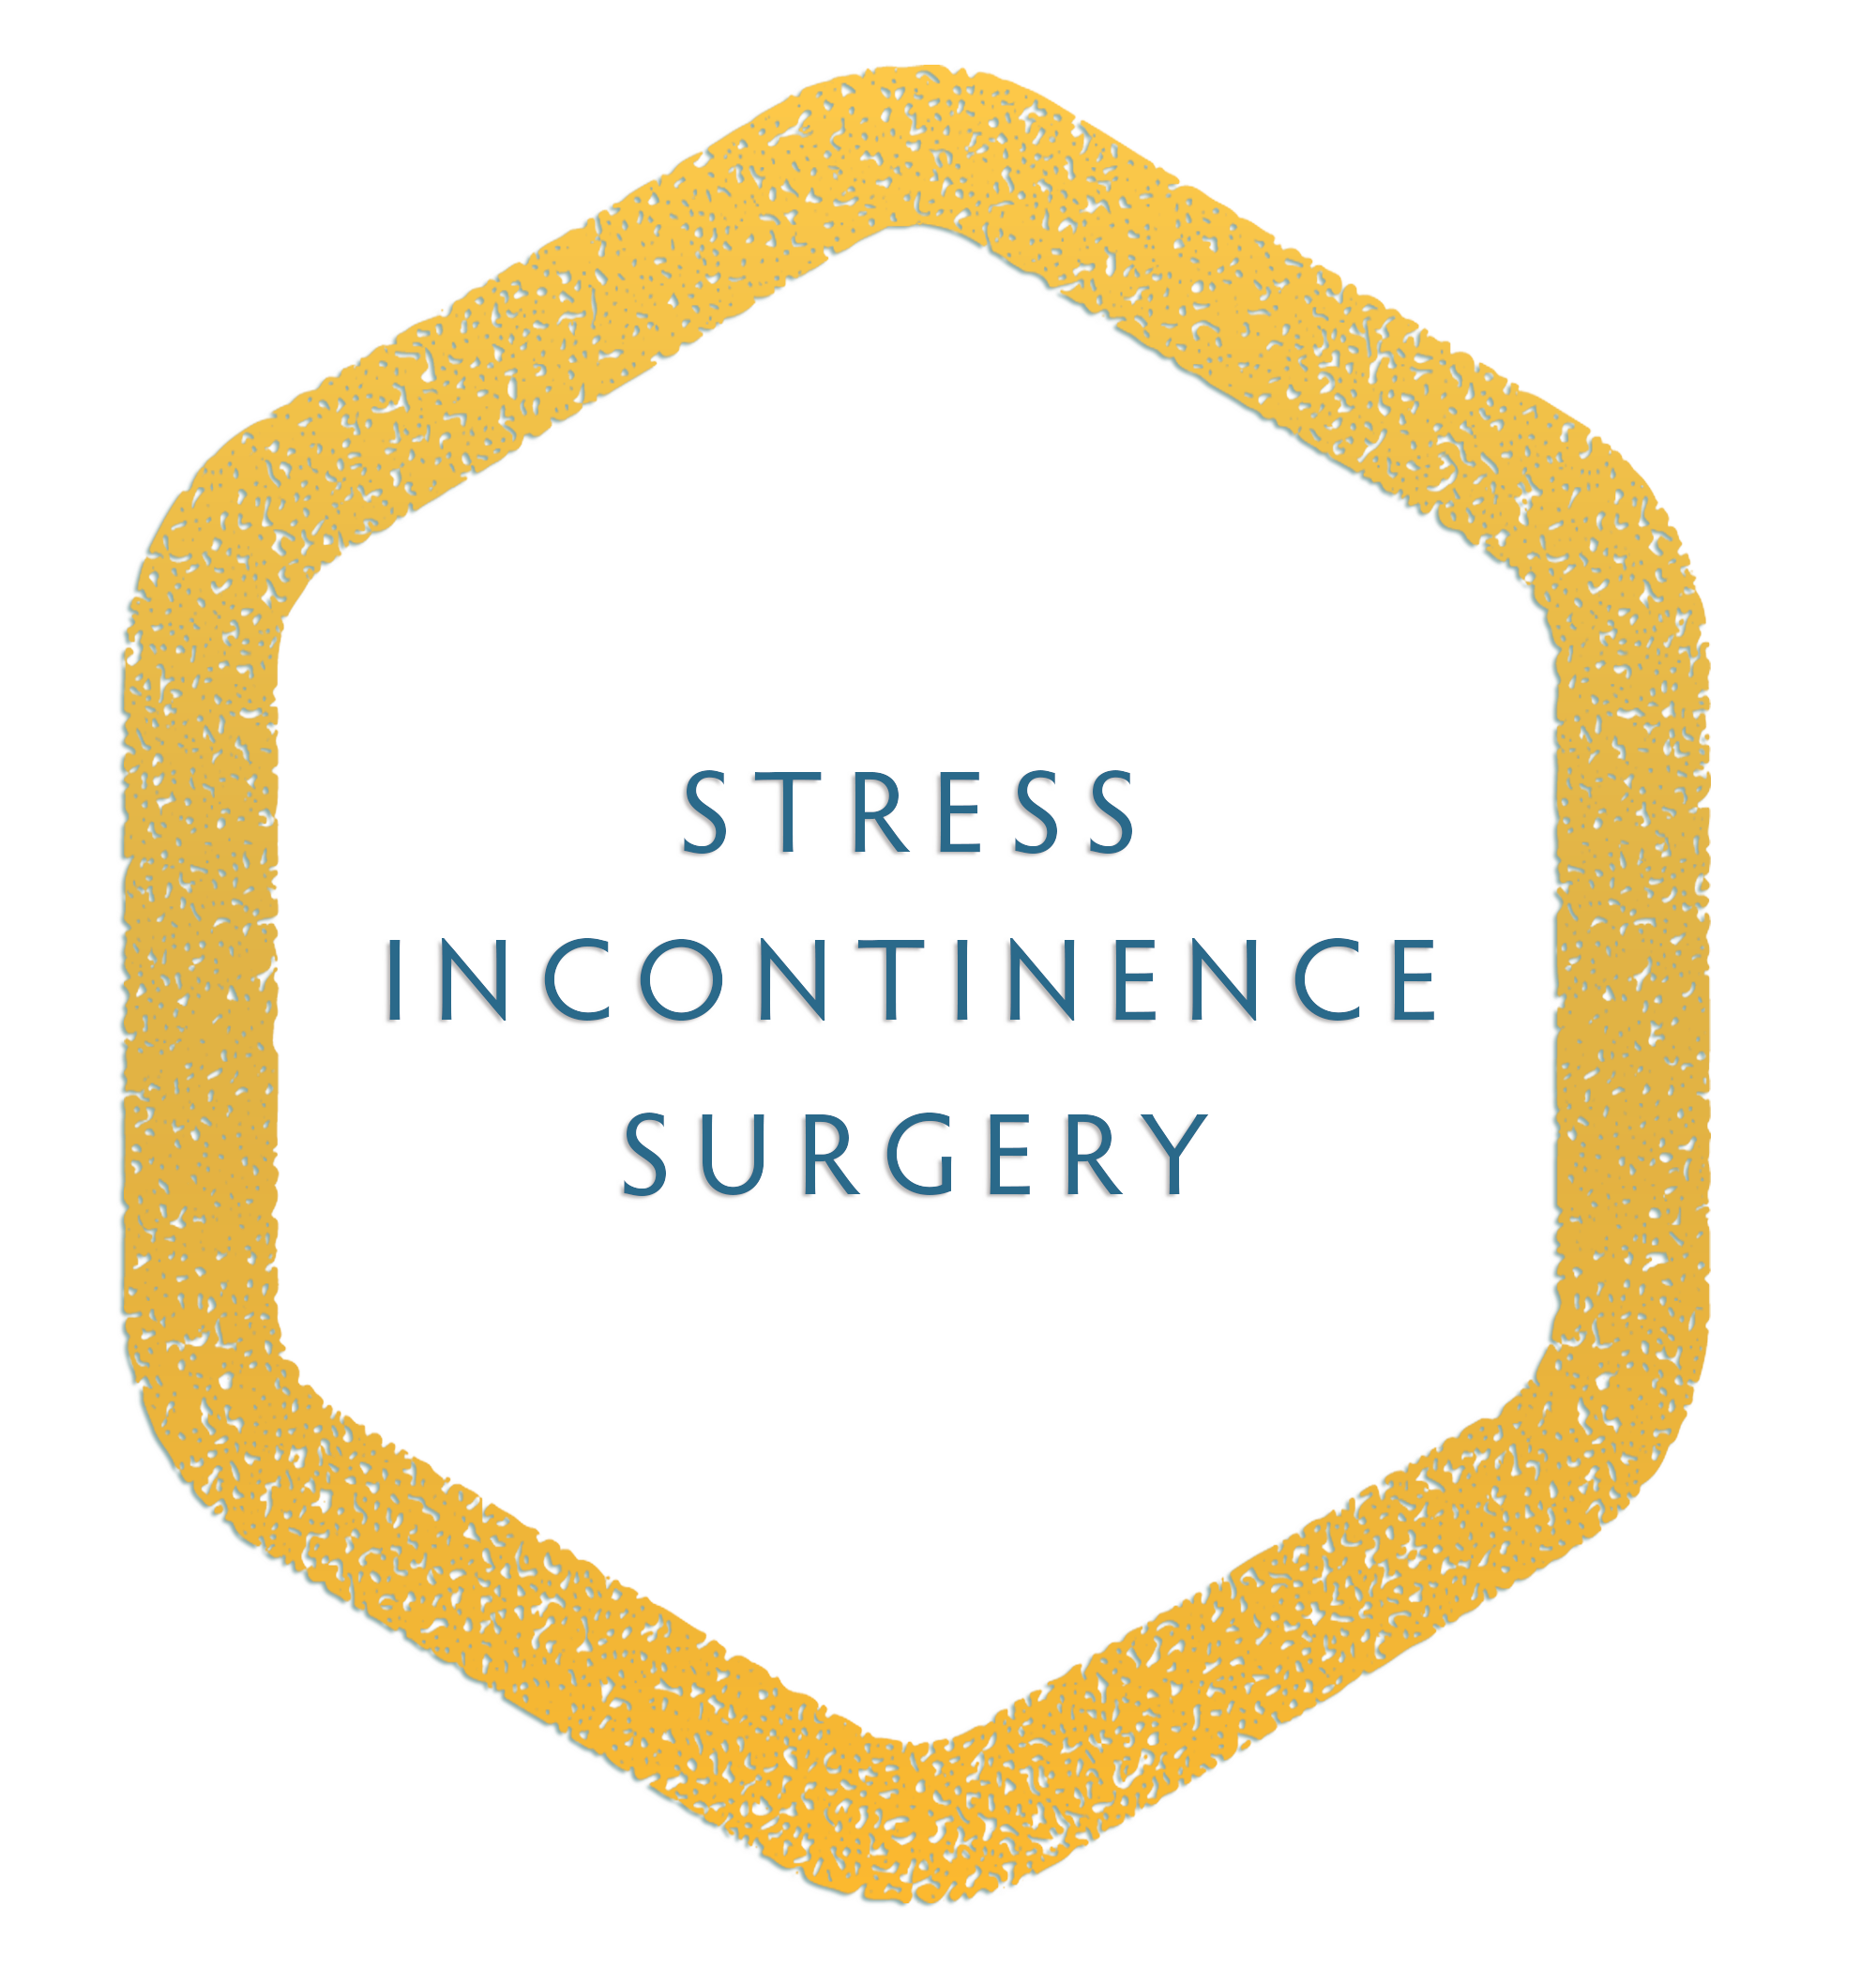 STRESS INCONTINENCE SURGERY.png